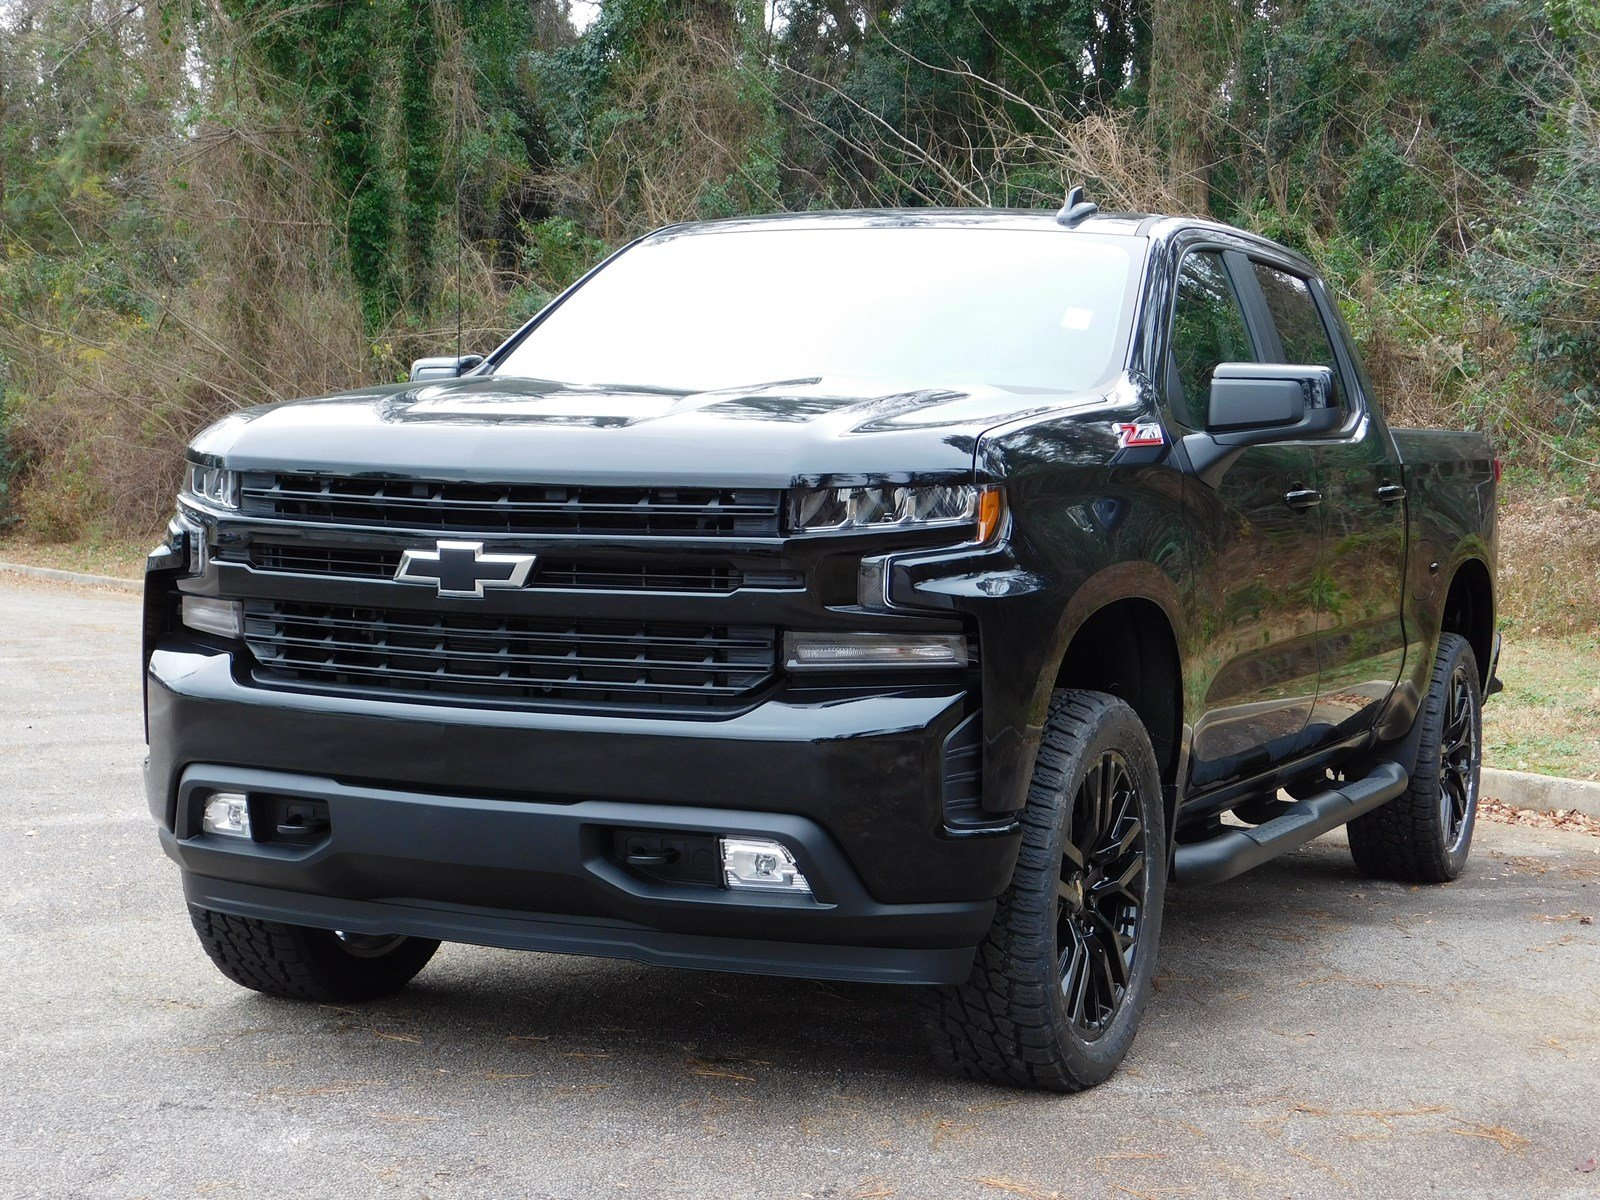 New 2019 Chevrolet Silverado 1500 Rst Crew Cab Pickup In Macon